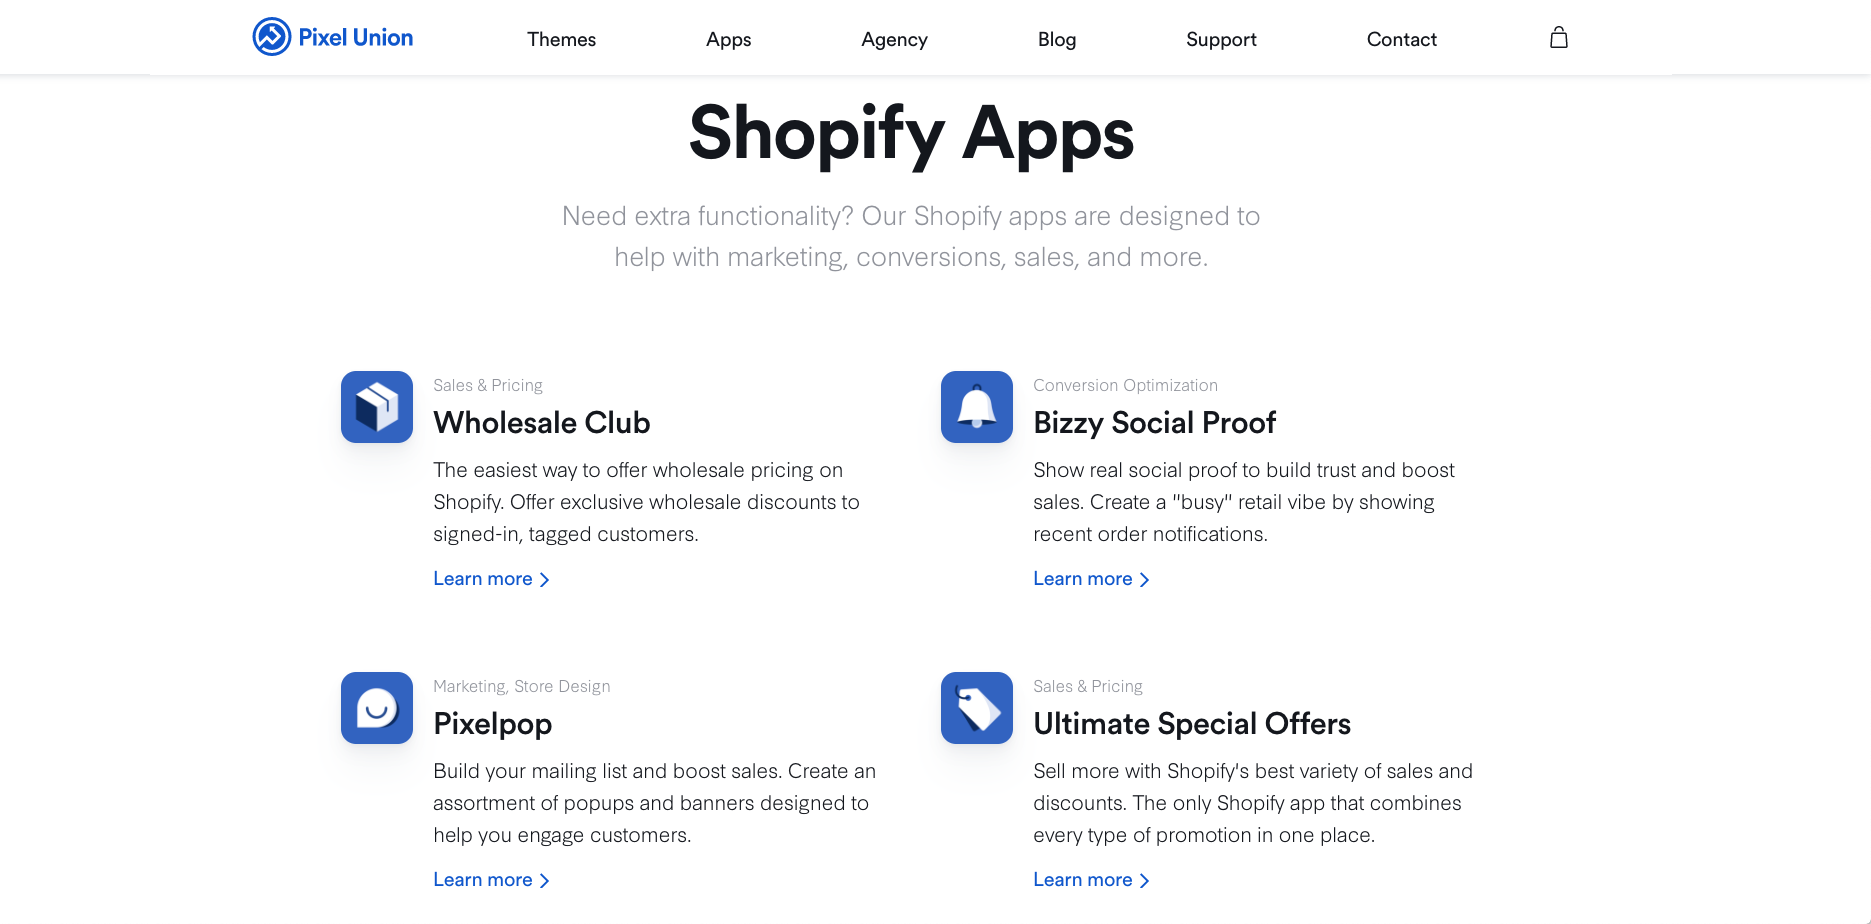 bizzy social proof shopify